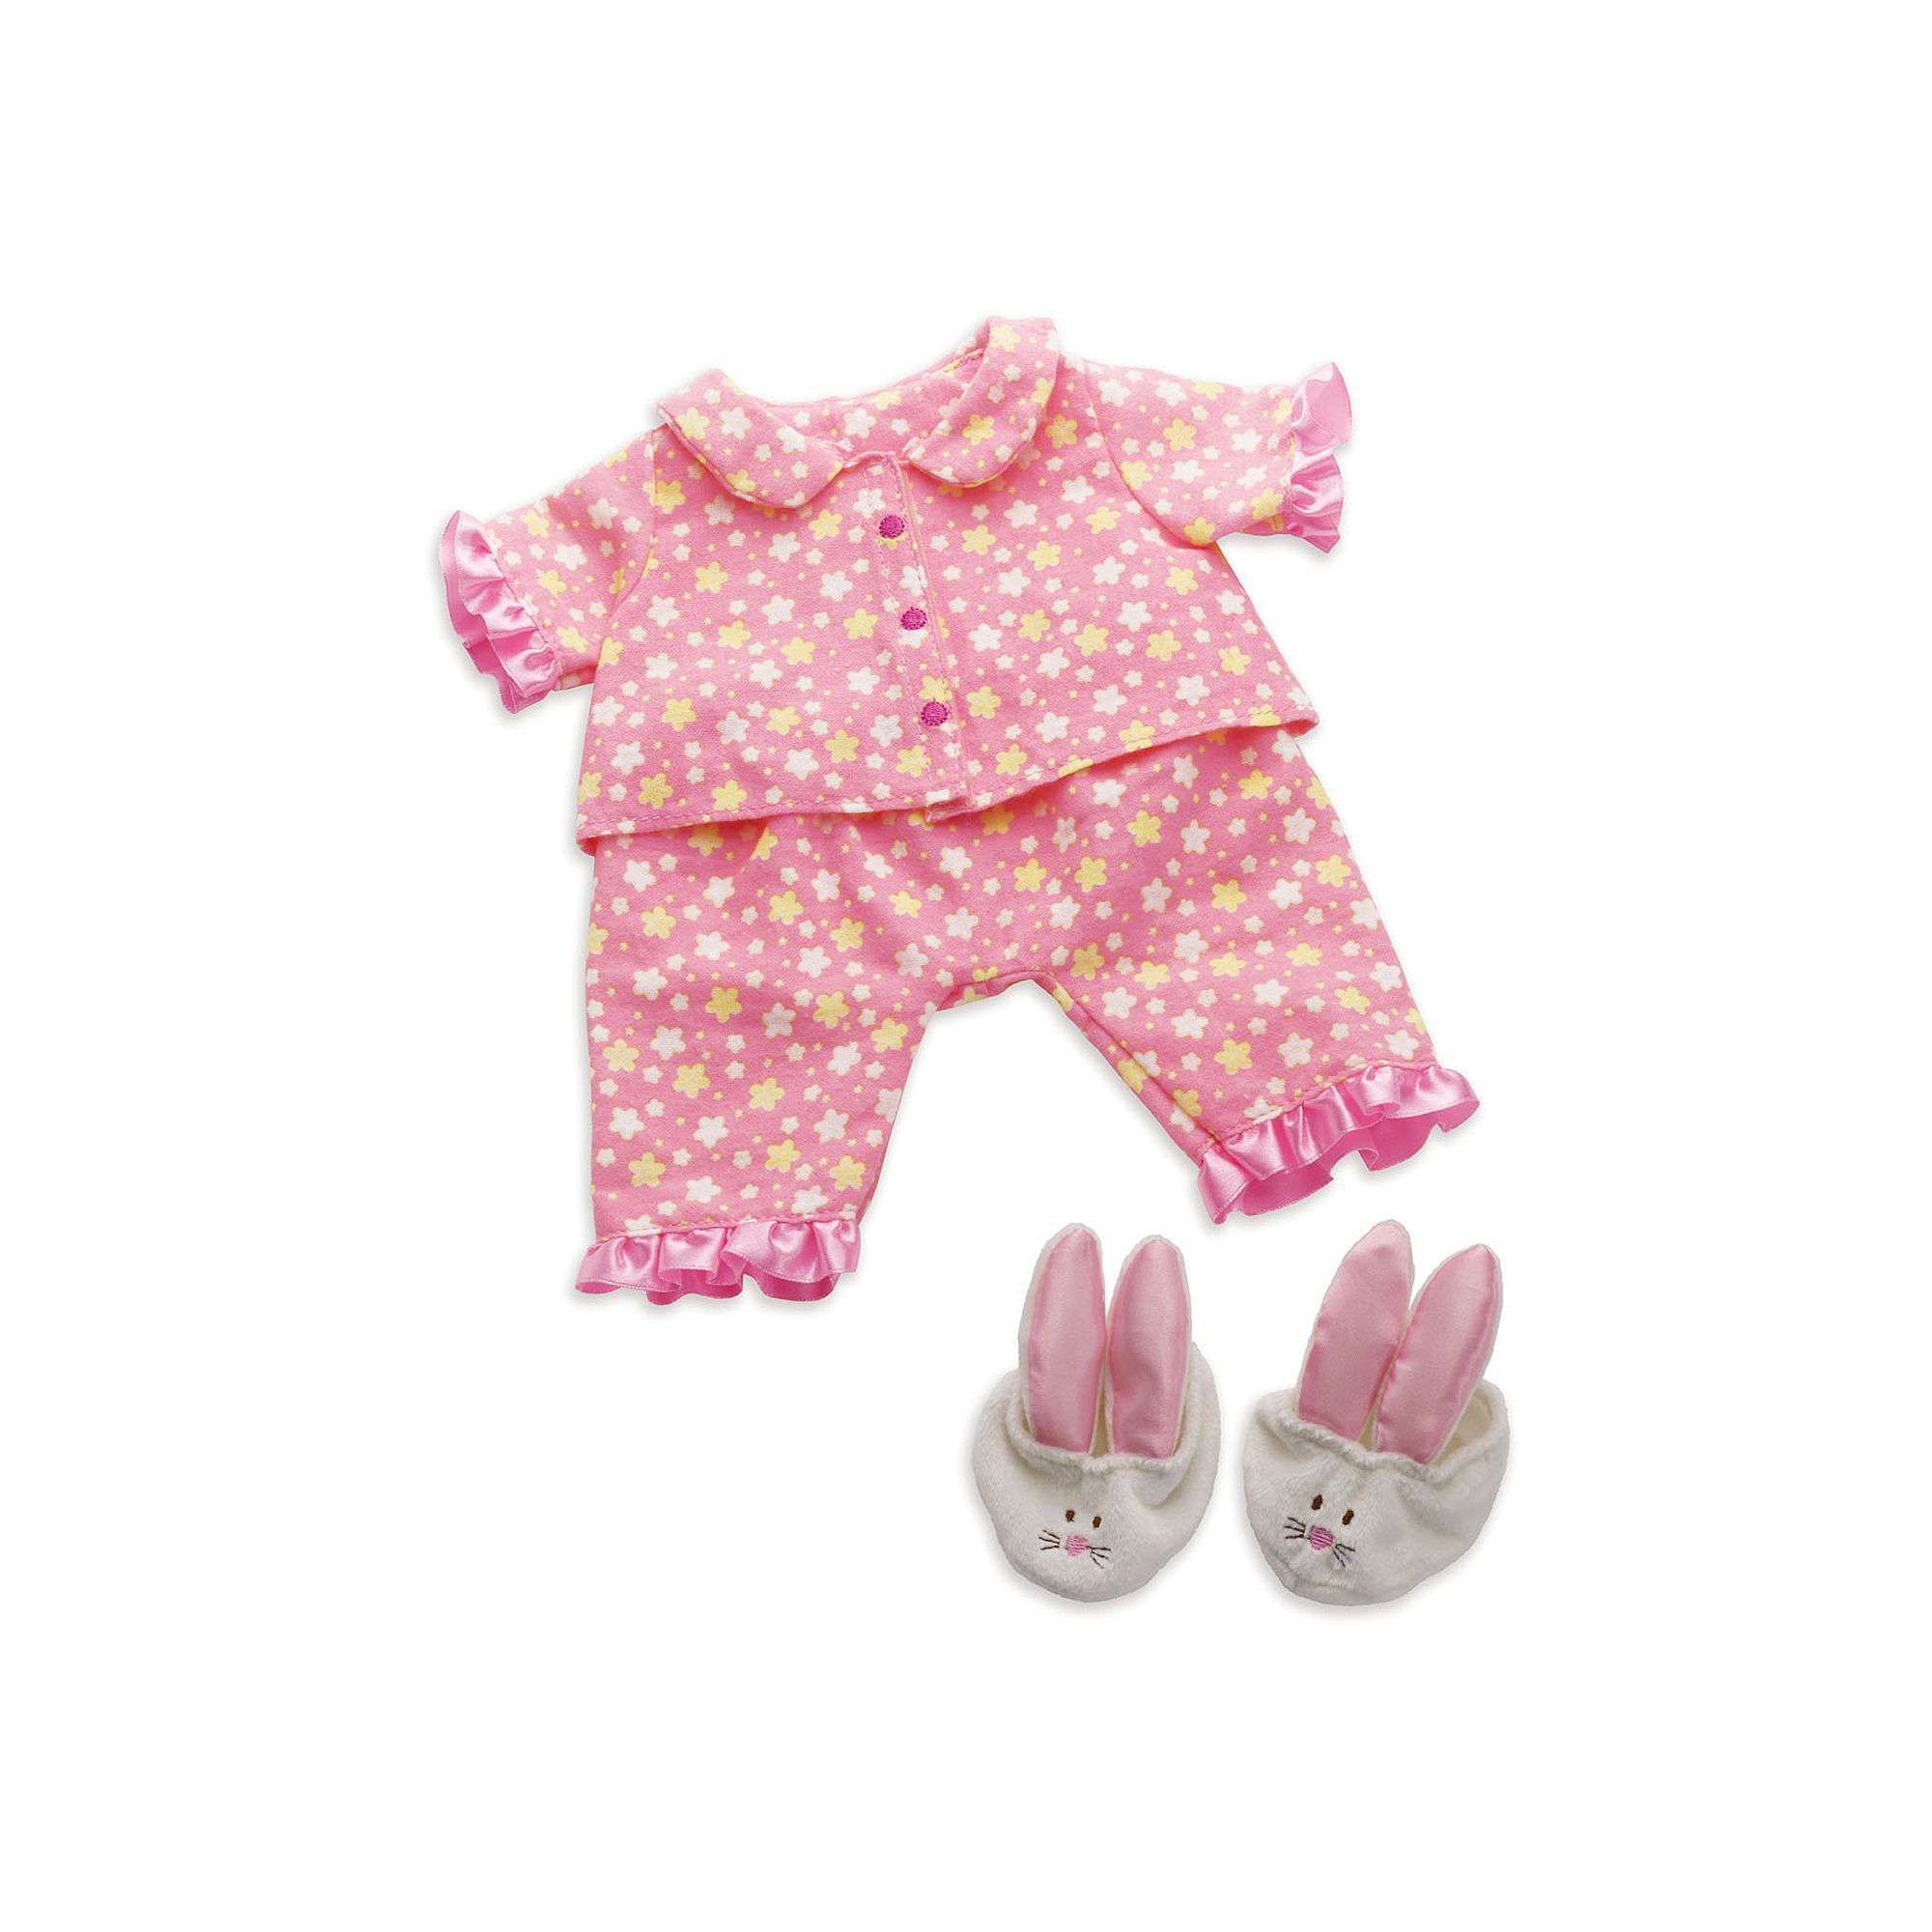 Baby Doll Clothes At Walmart Baby Stella Goodnight Pj Setmanhattan Toy Multicolor  Toy And